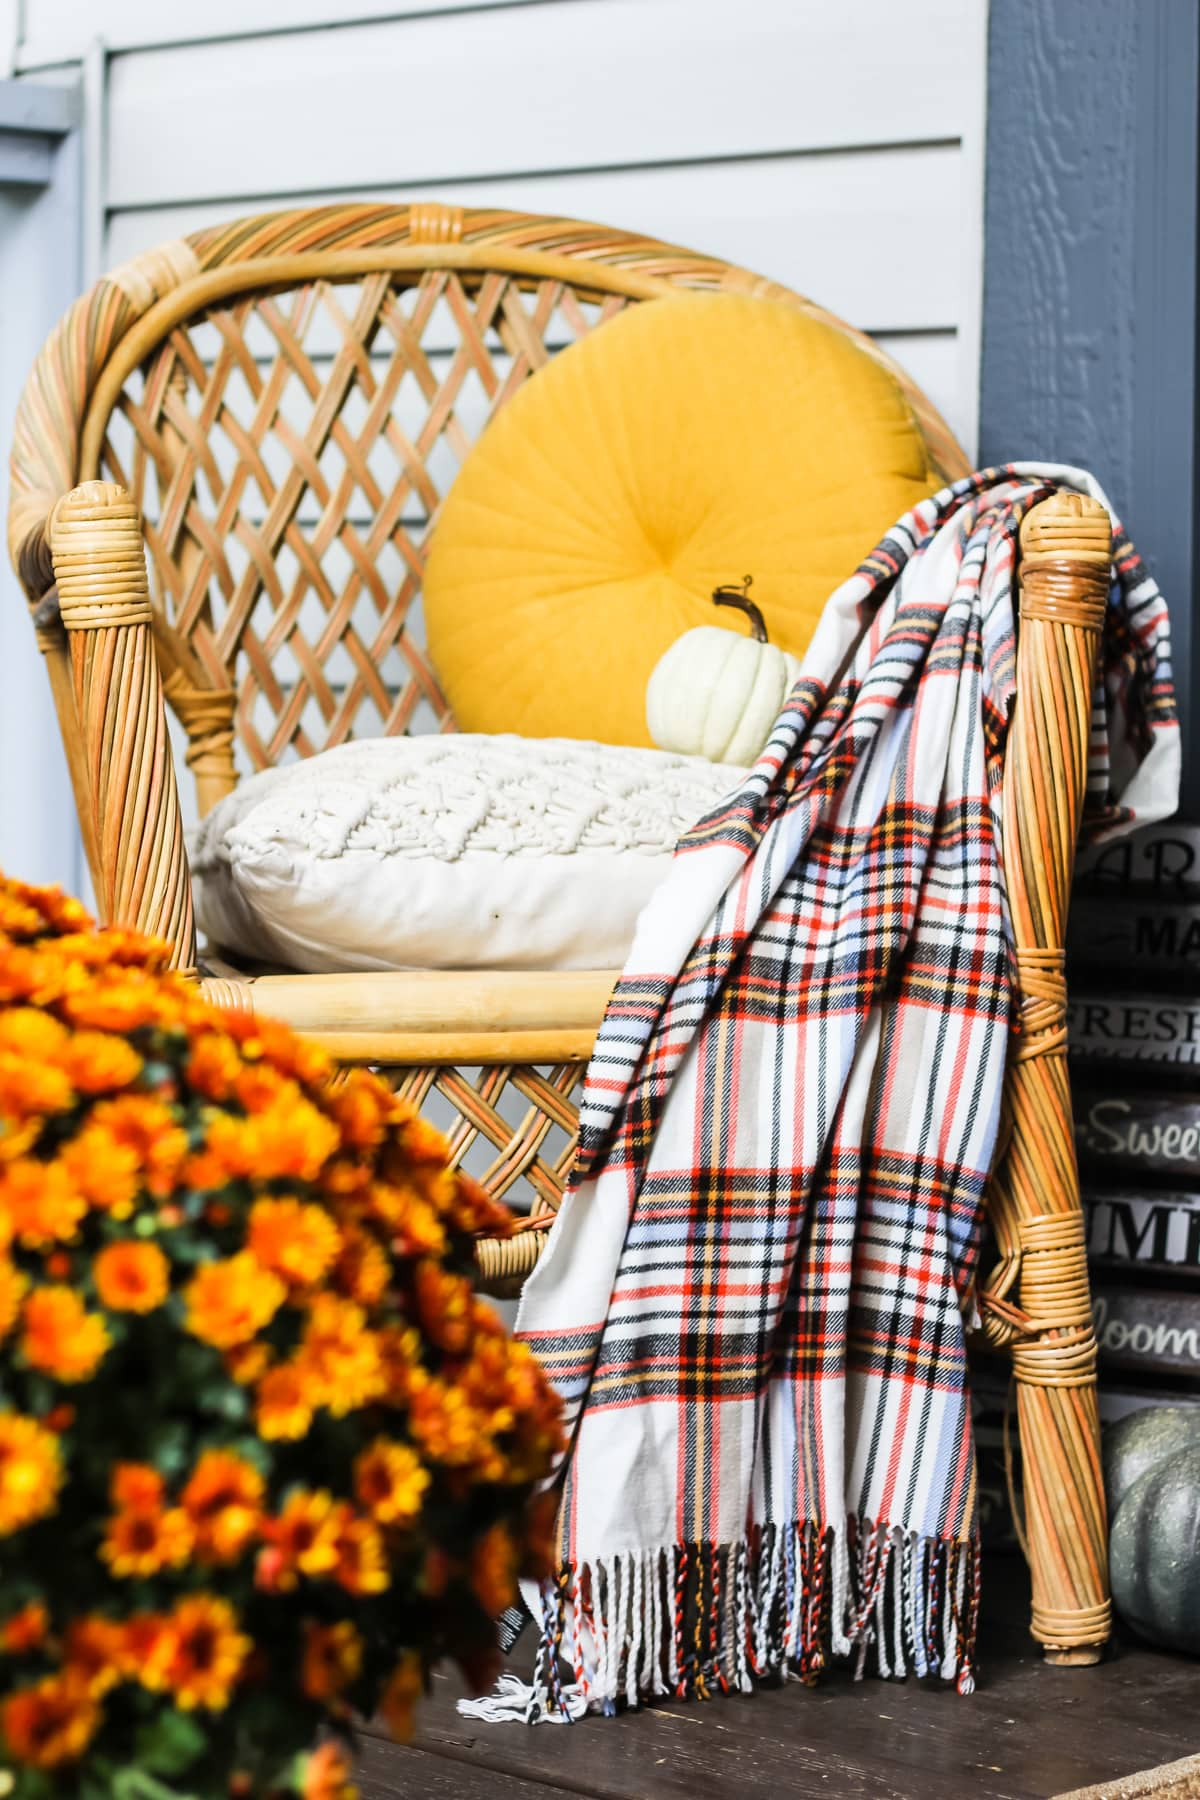 a wicker chair with yellow and beige pillows, and a plaid blanket